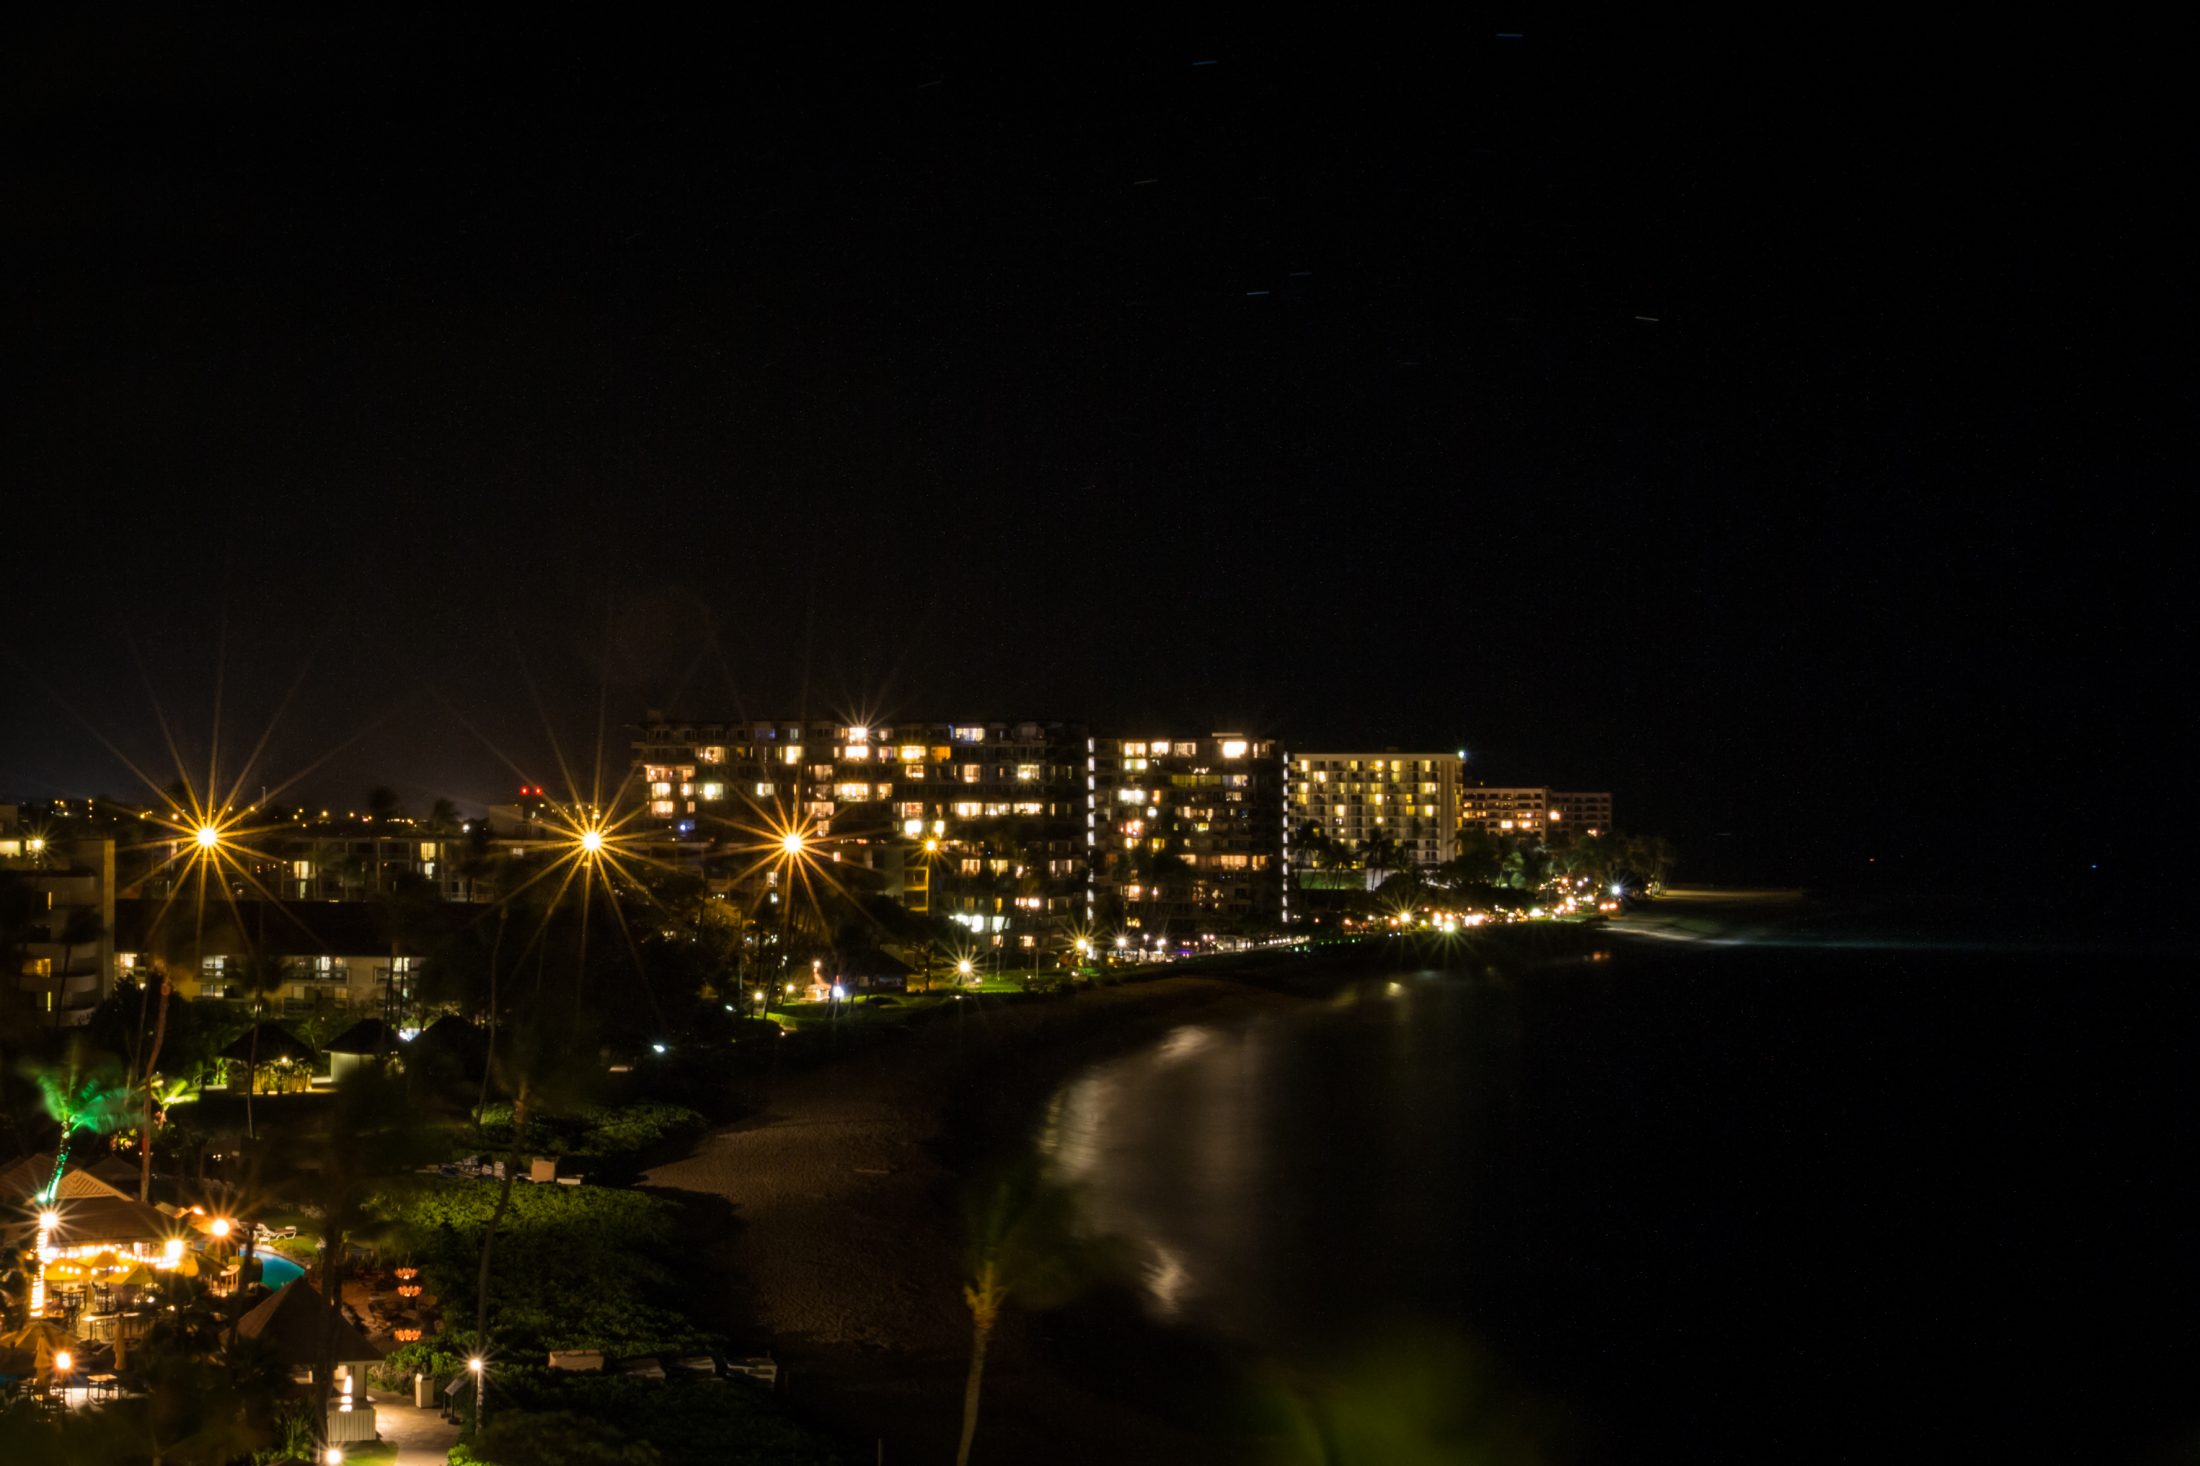 HD Wallpaper Night falls over Kaanapali Beach in Maui Hawaii 2200x1466